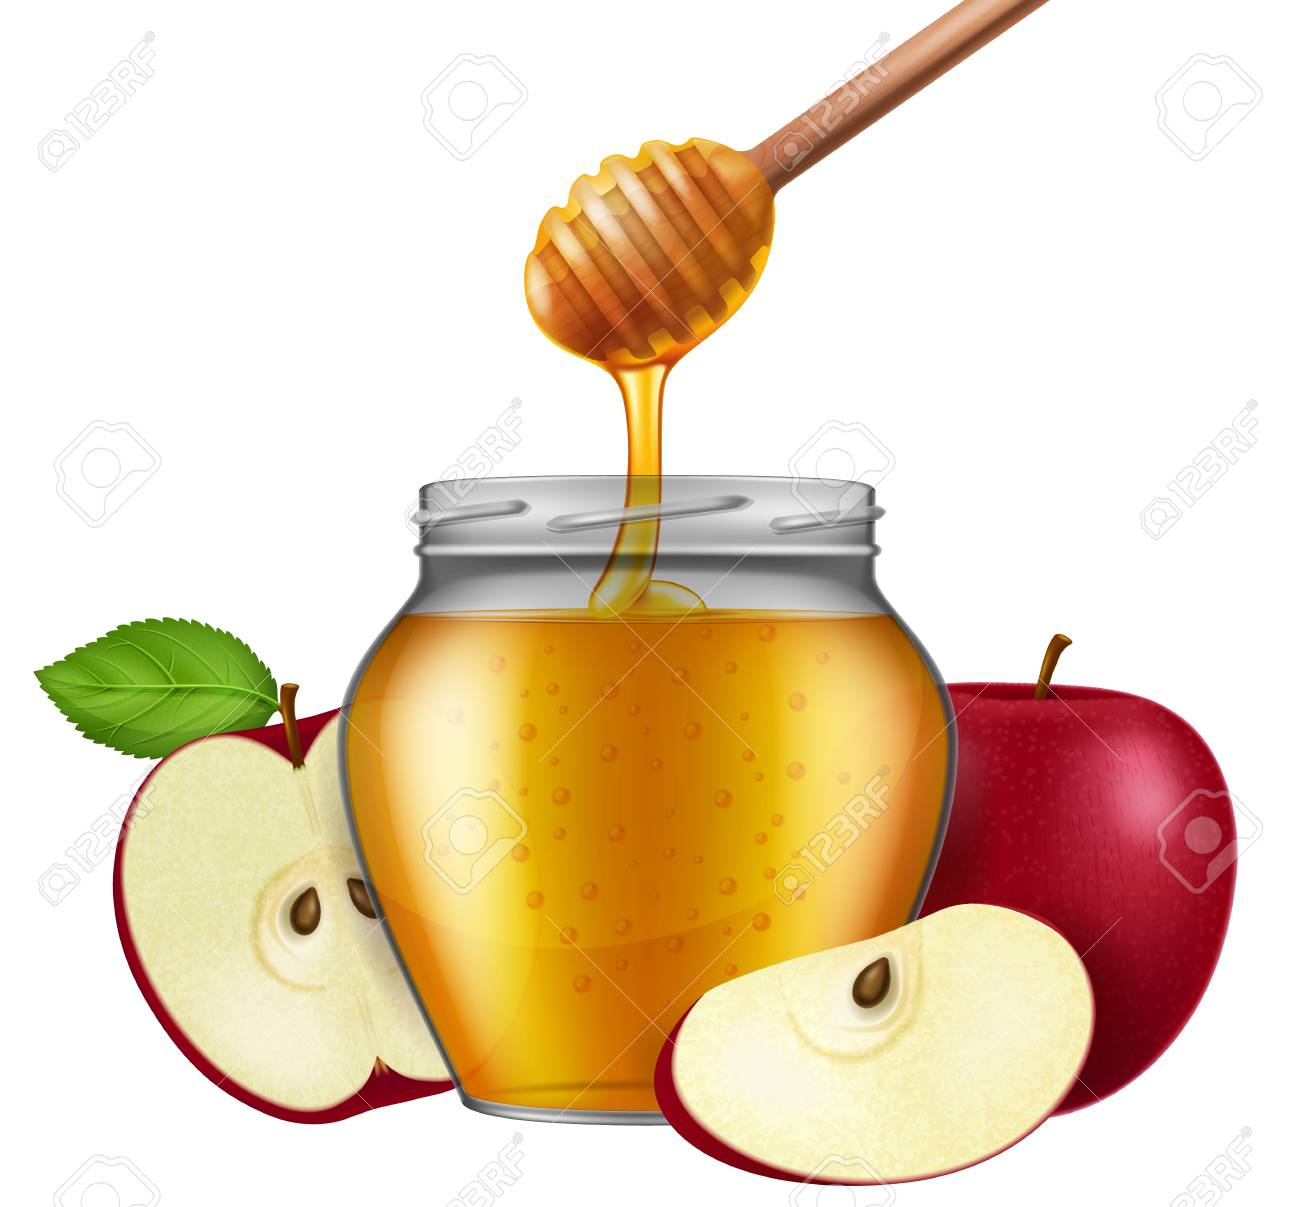 Jar of honey with a wooden dipper and apple. Traditional celebration...